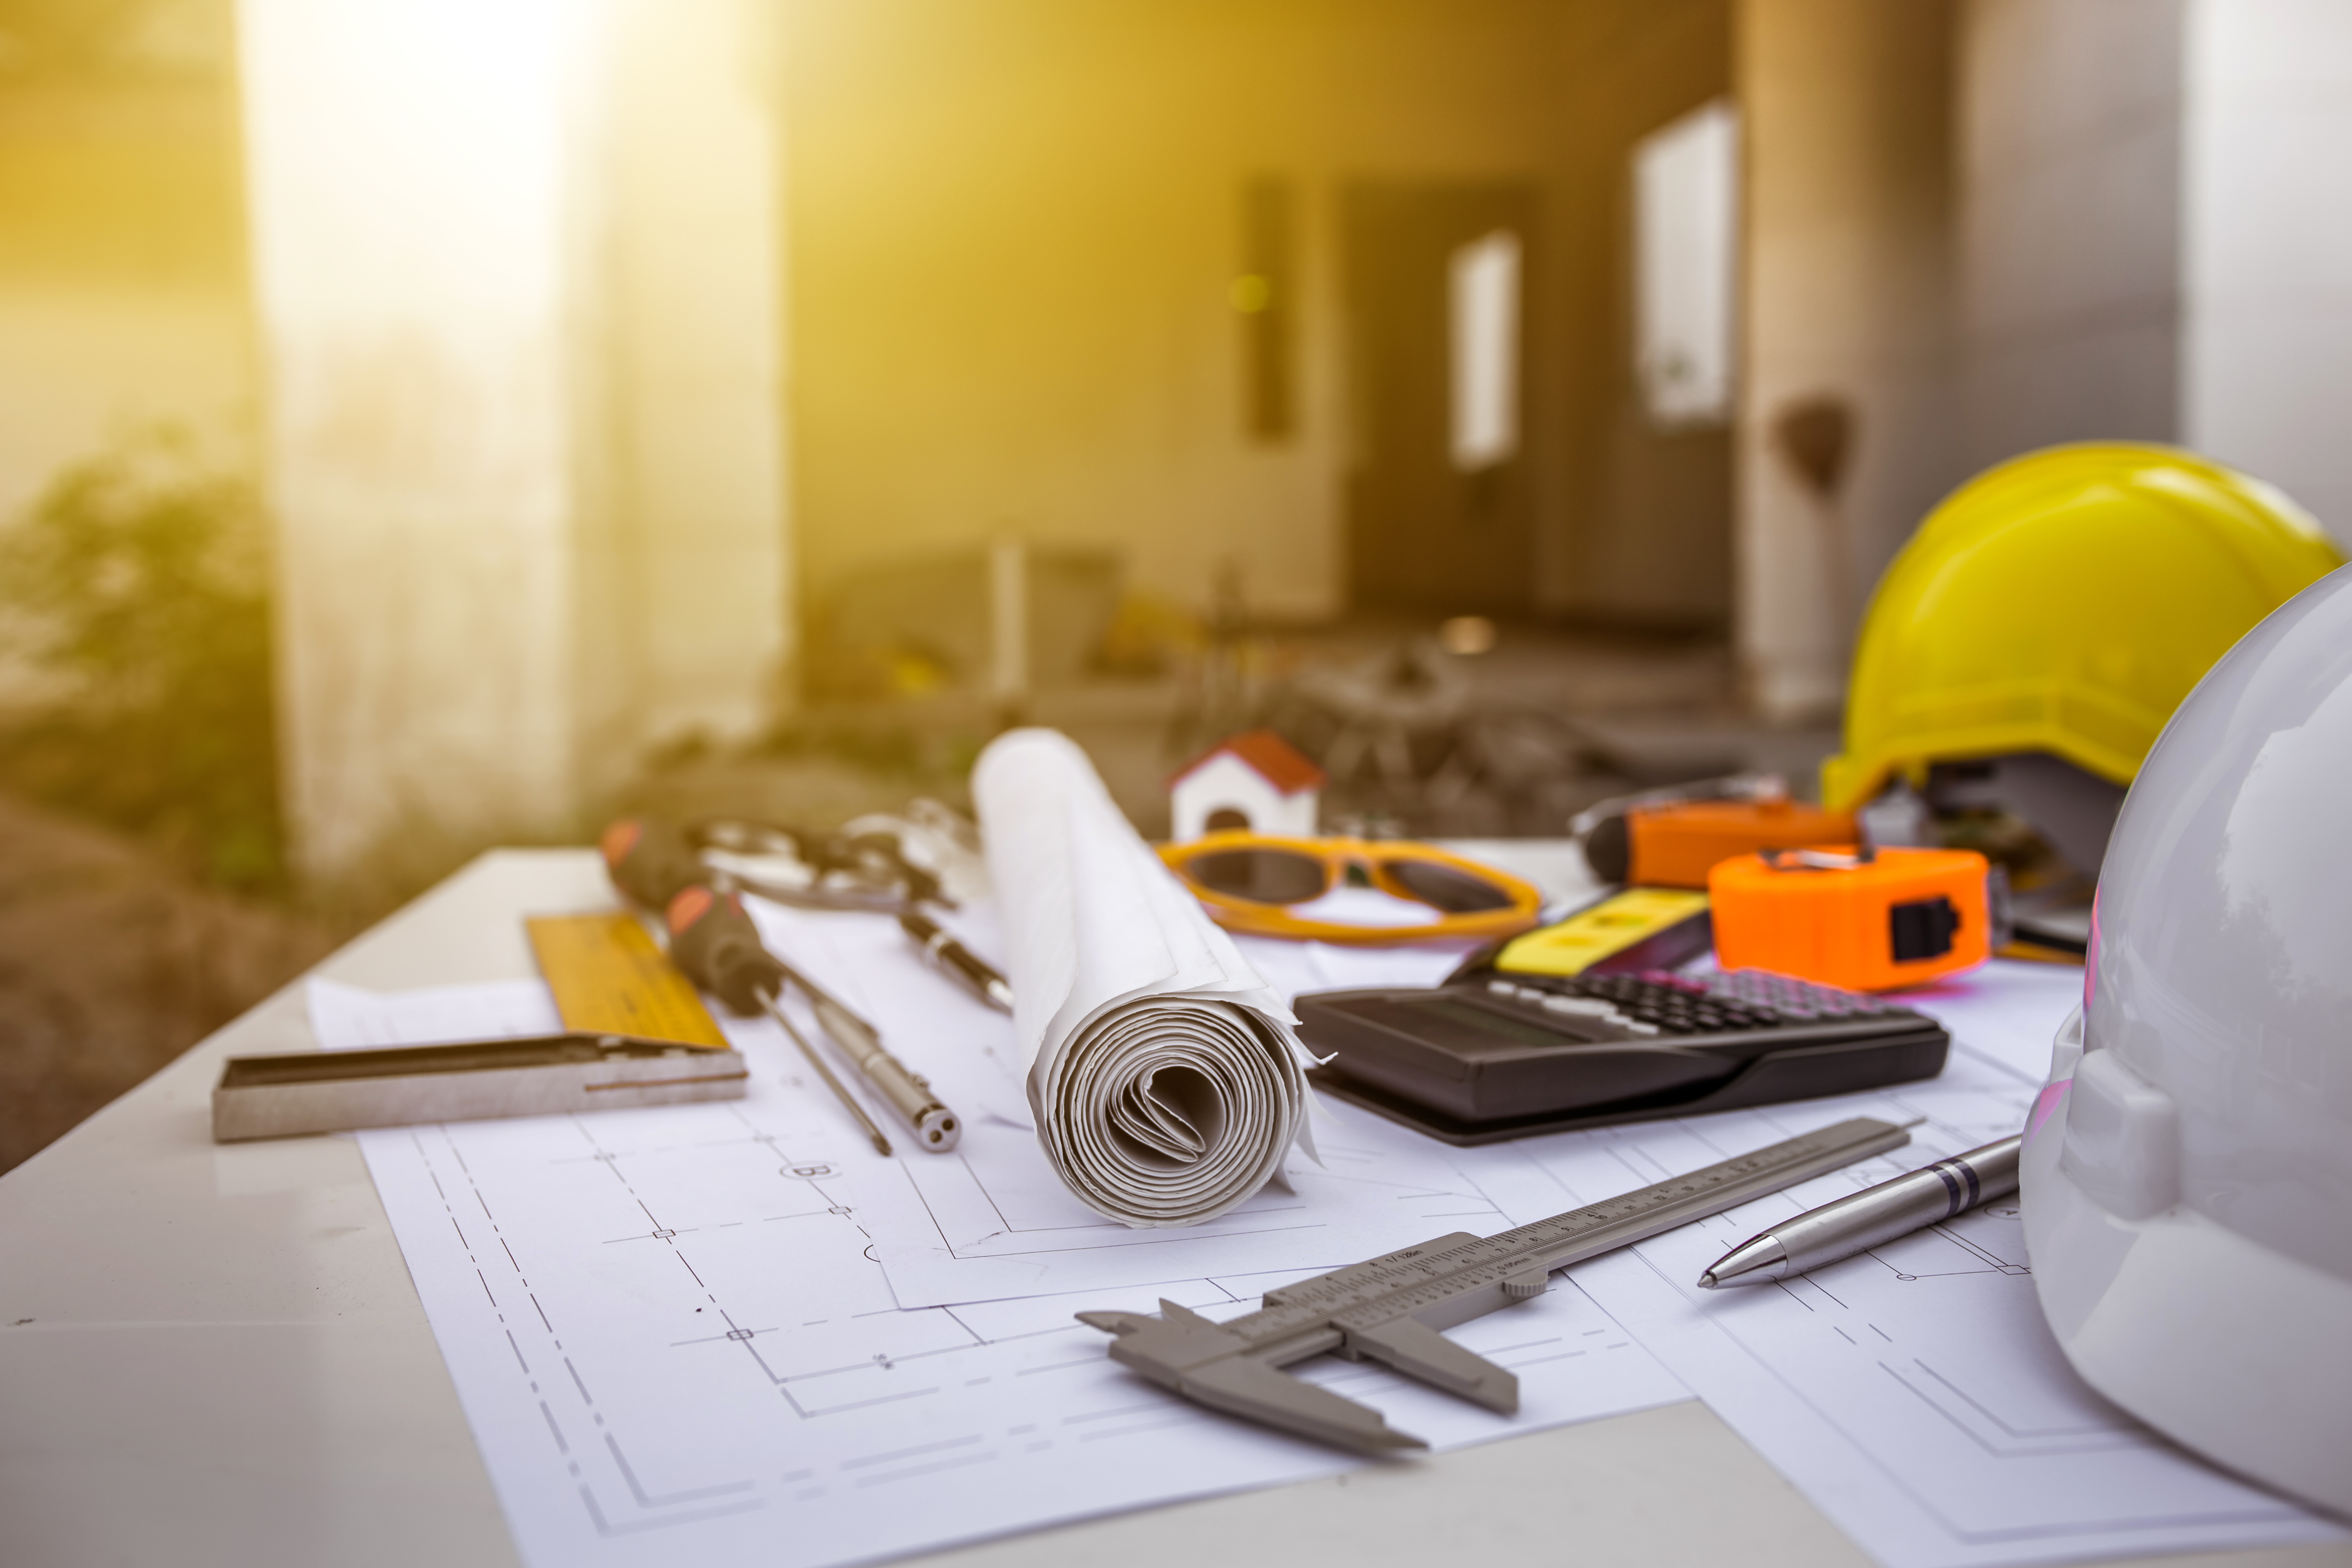 engineering-diagram-blueprint-paper-drafting-project-sketch-architectural-industrial-drawing-detail-and-several-drawing-tools